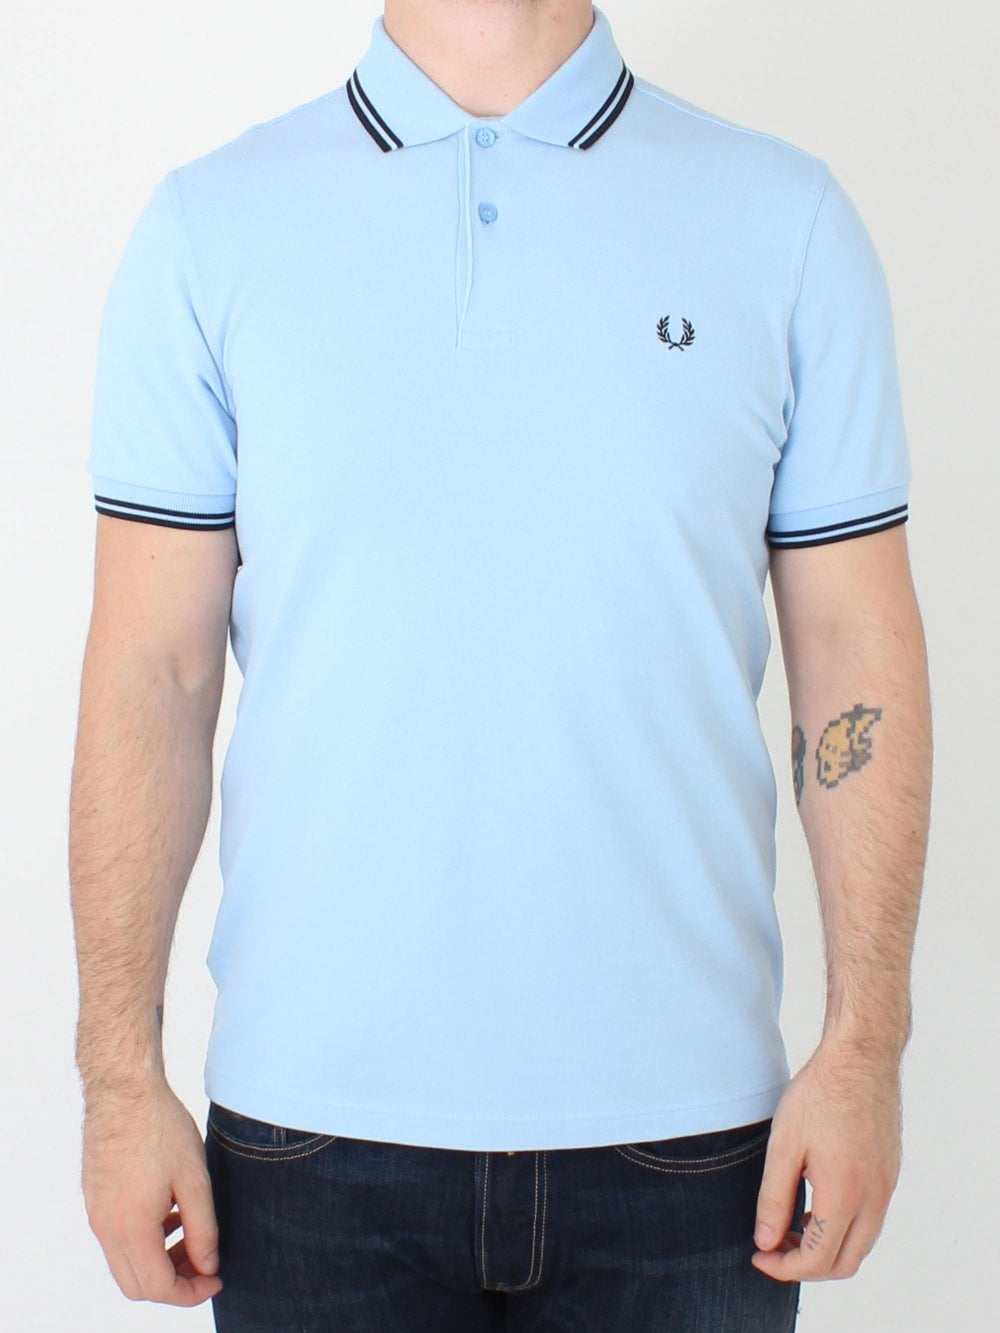 ef853011 Fred Perry M3600 Twin Tipped Classic Polo in Sky Blue/Black ...